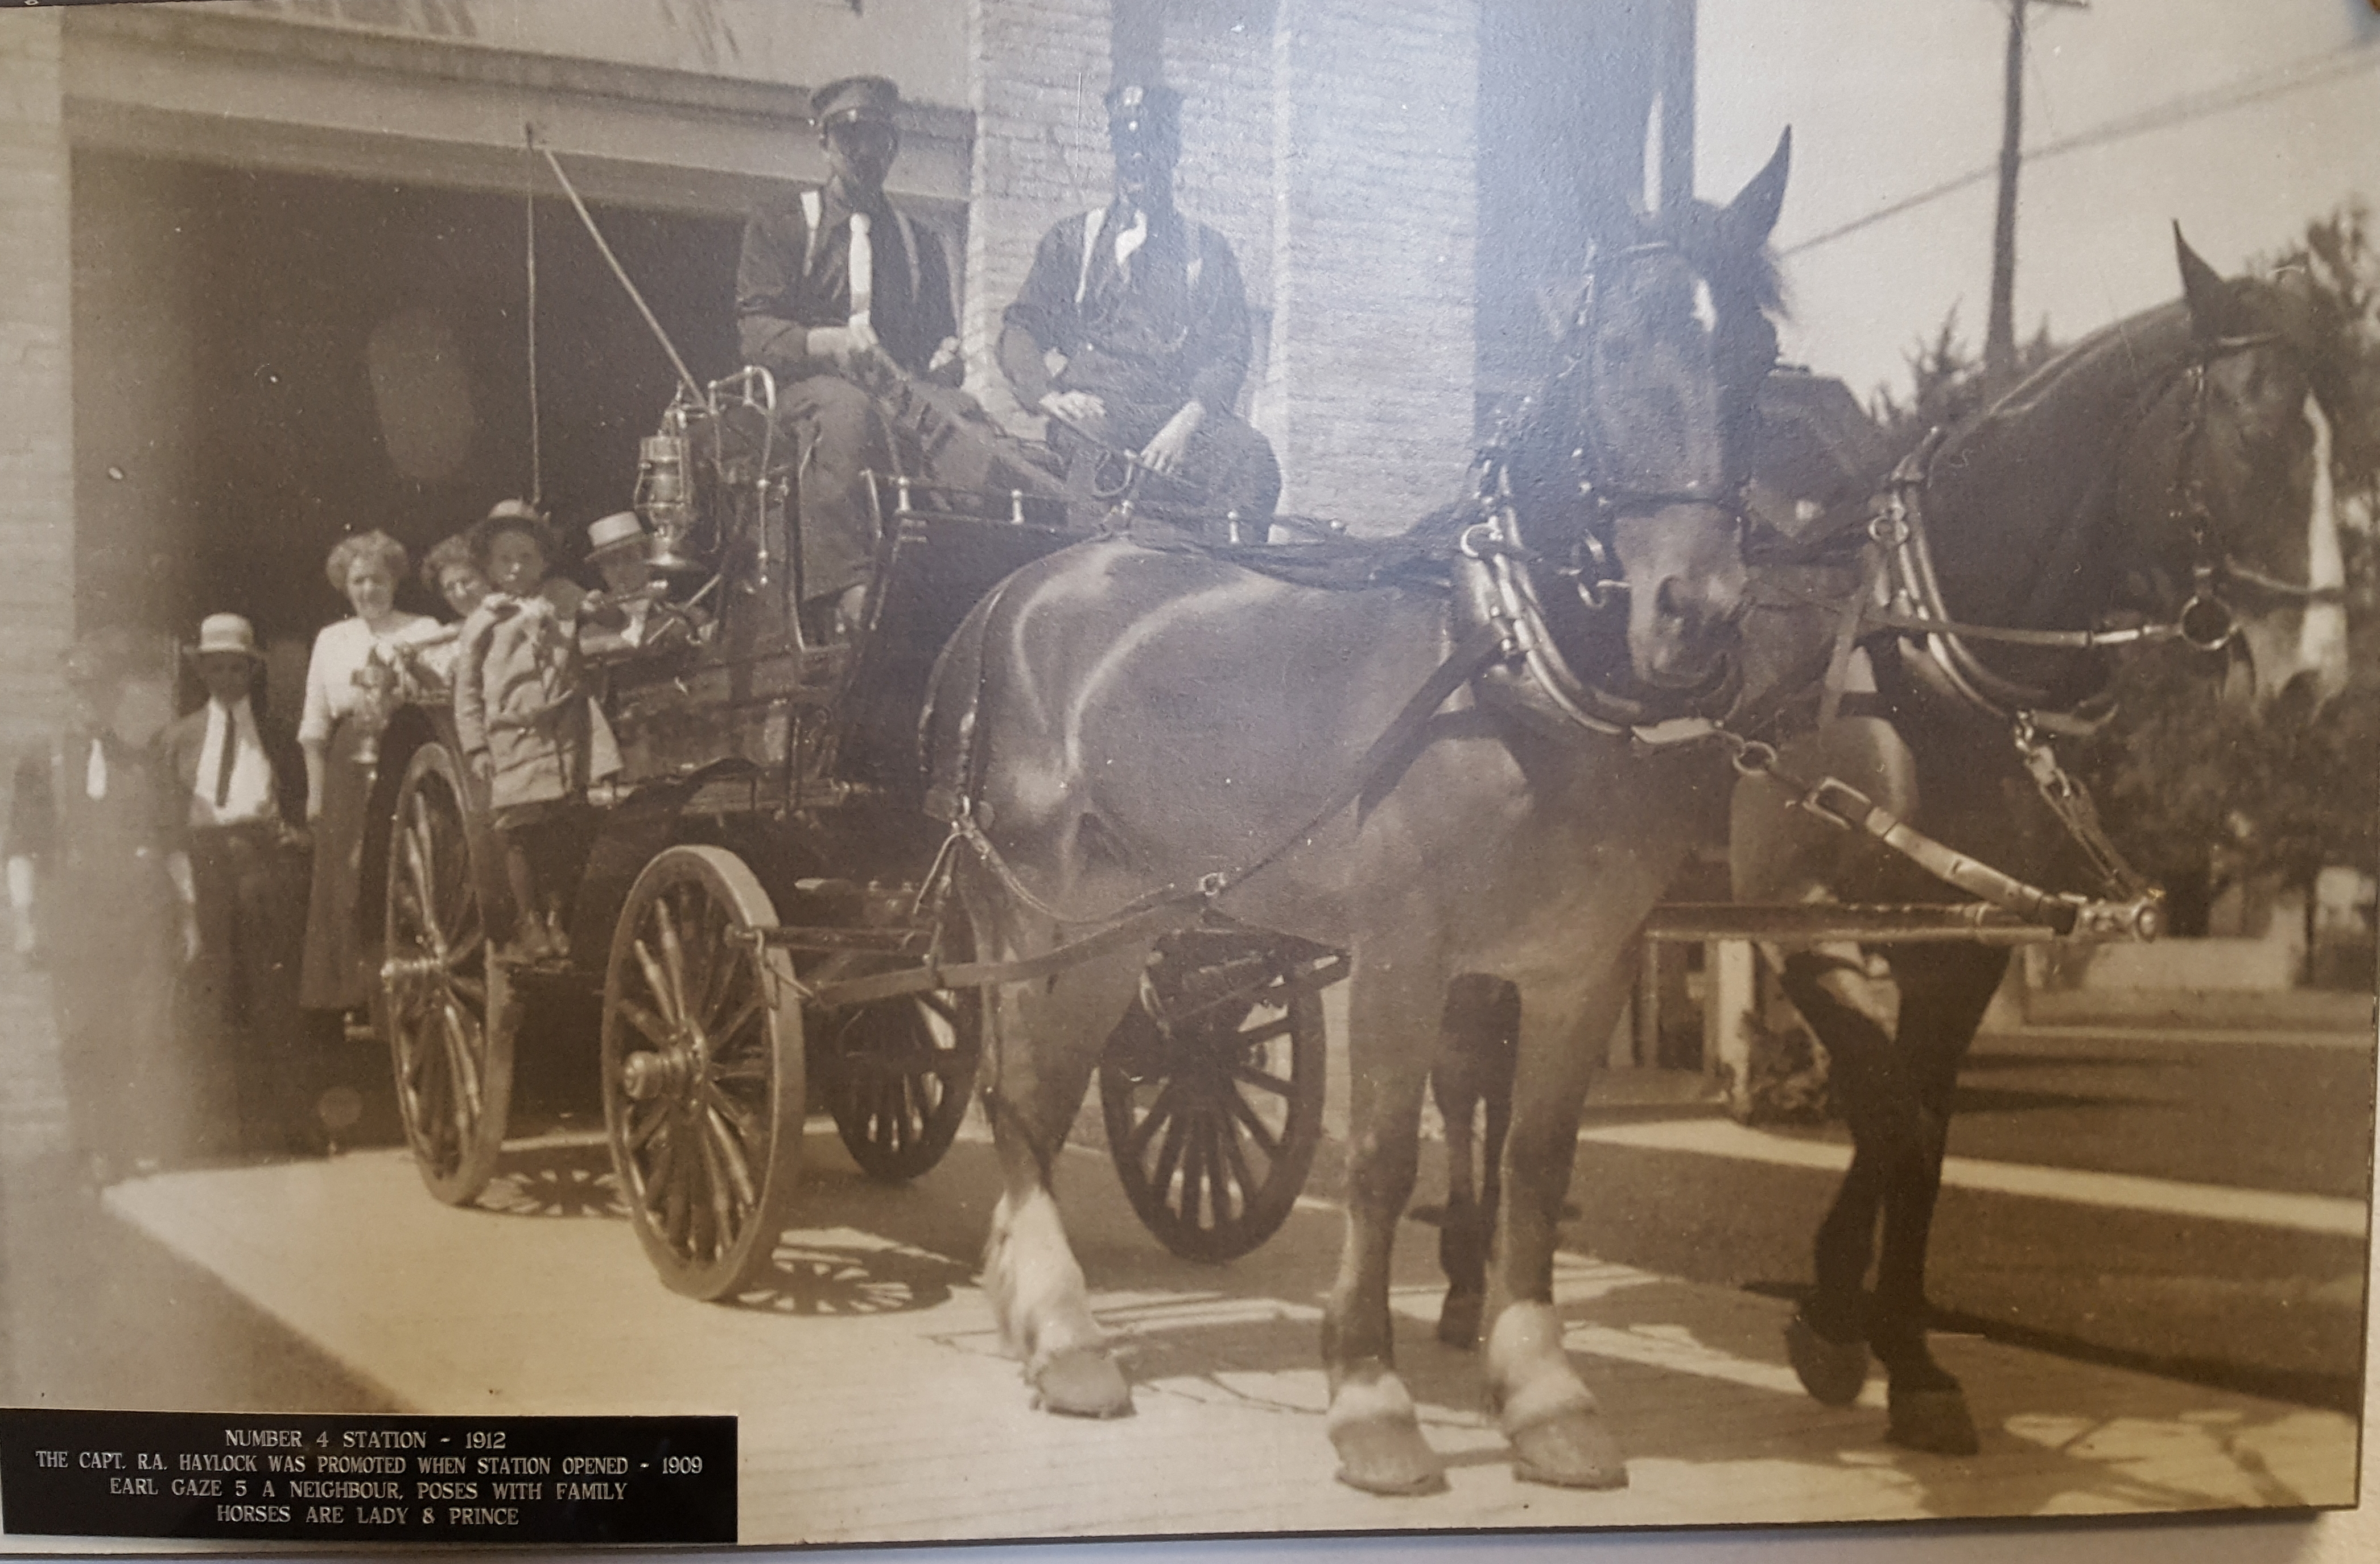 Crew pose with horses and apparatus in front of station with neighours.